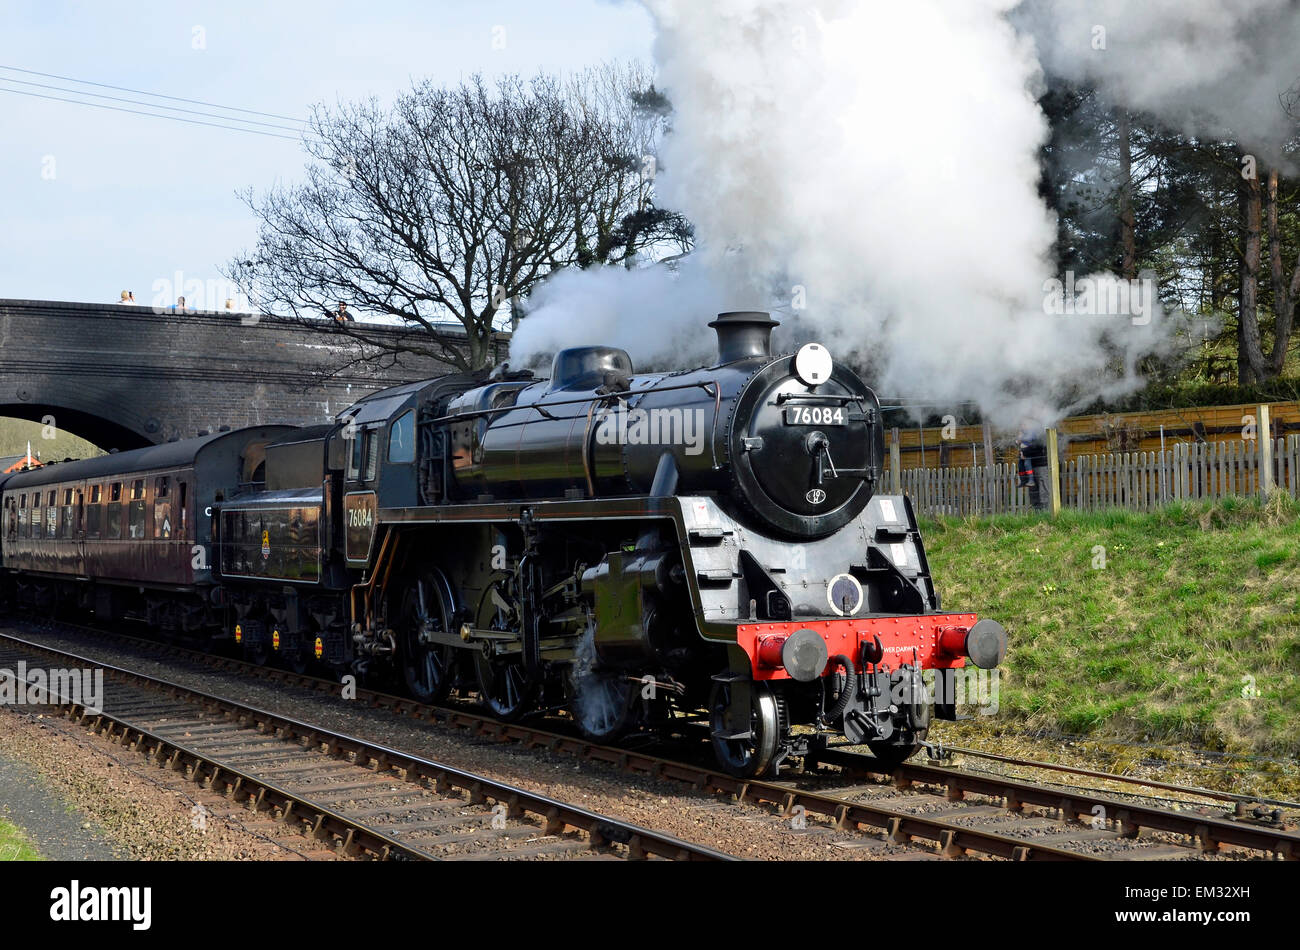 A steam train leaves Weybourne Station on the North Norfolk Railway with a service to Holt on Easter Monday 2015. Stock Photo